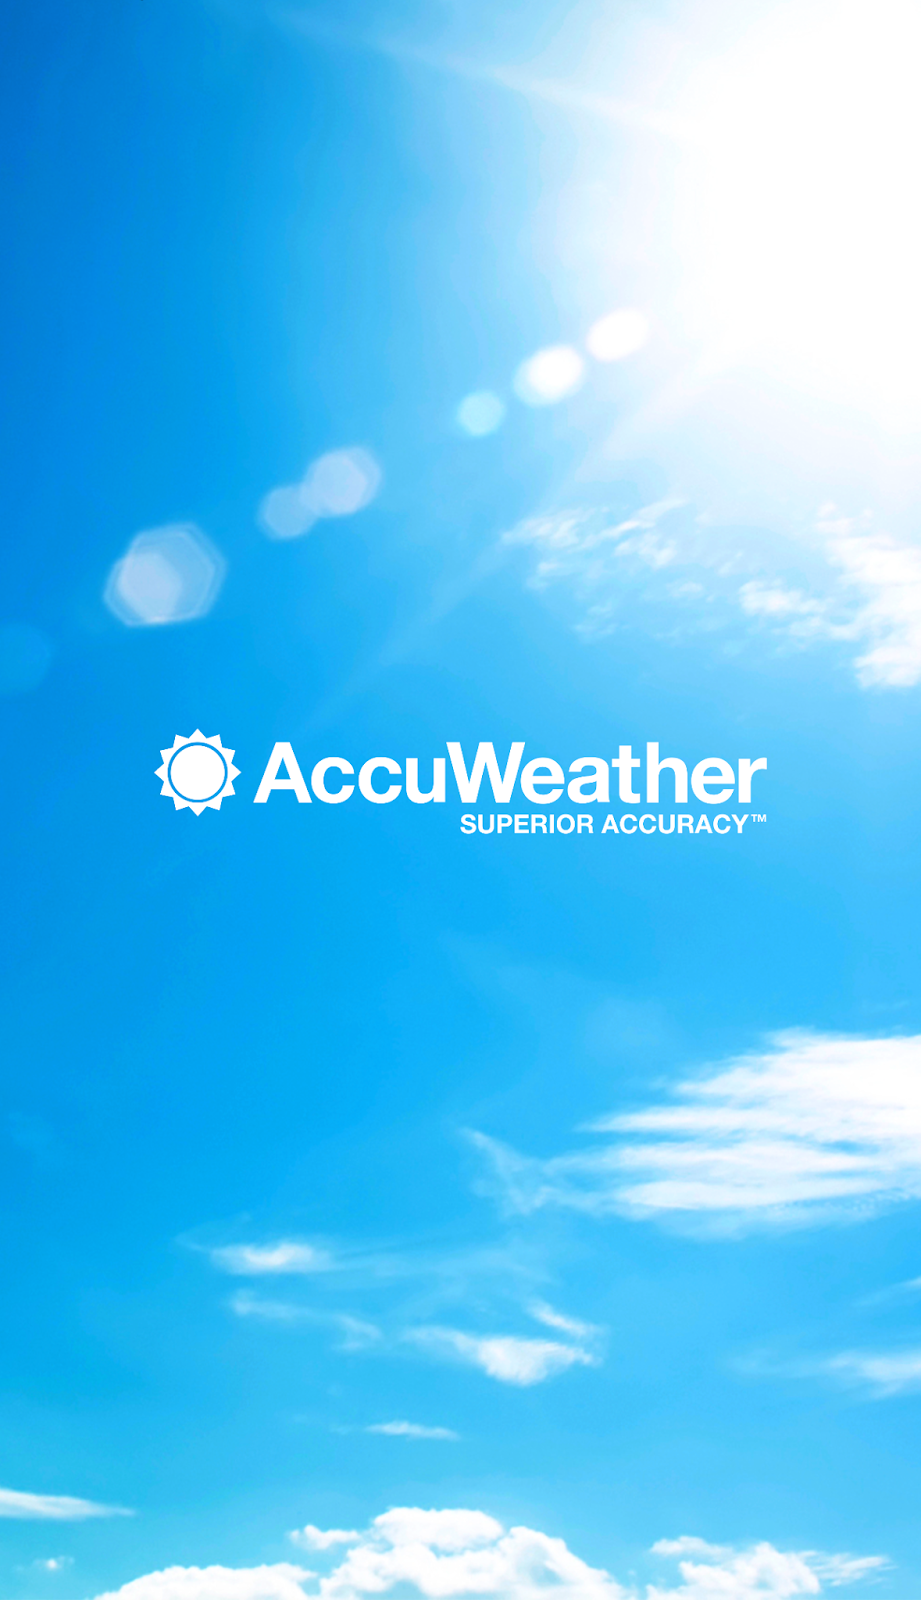 FREE IPHONE IPAD IOS APPS And GAMES Daily FREE IPHONE APP - Free accuweather